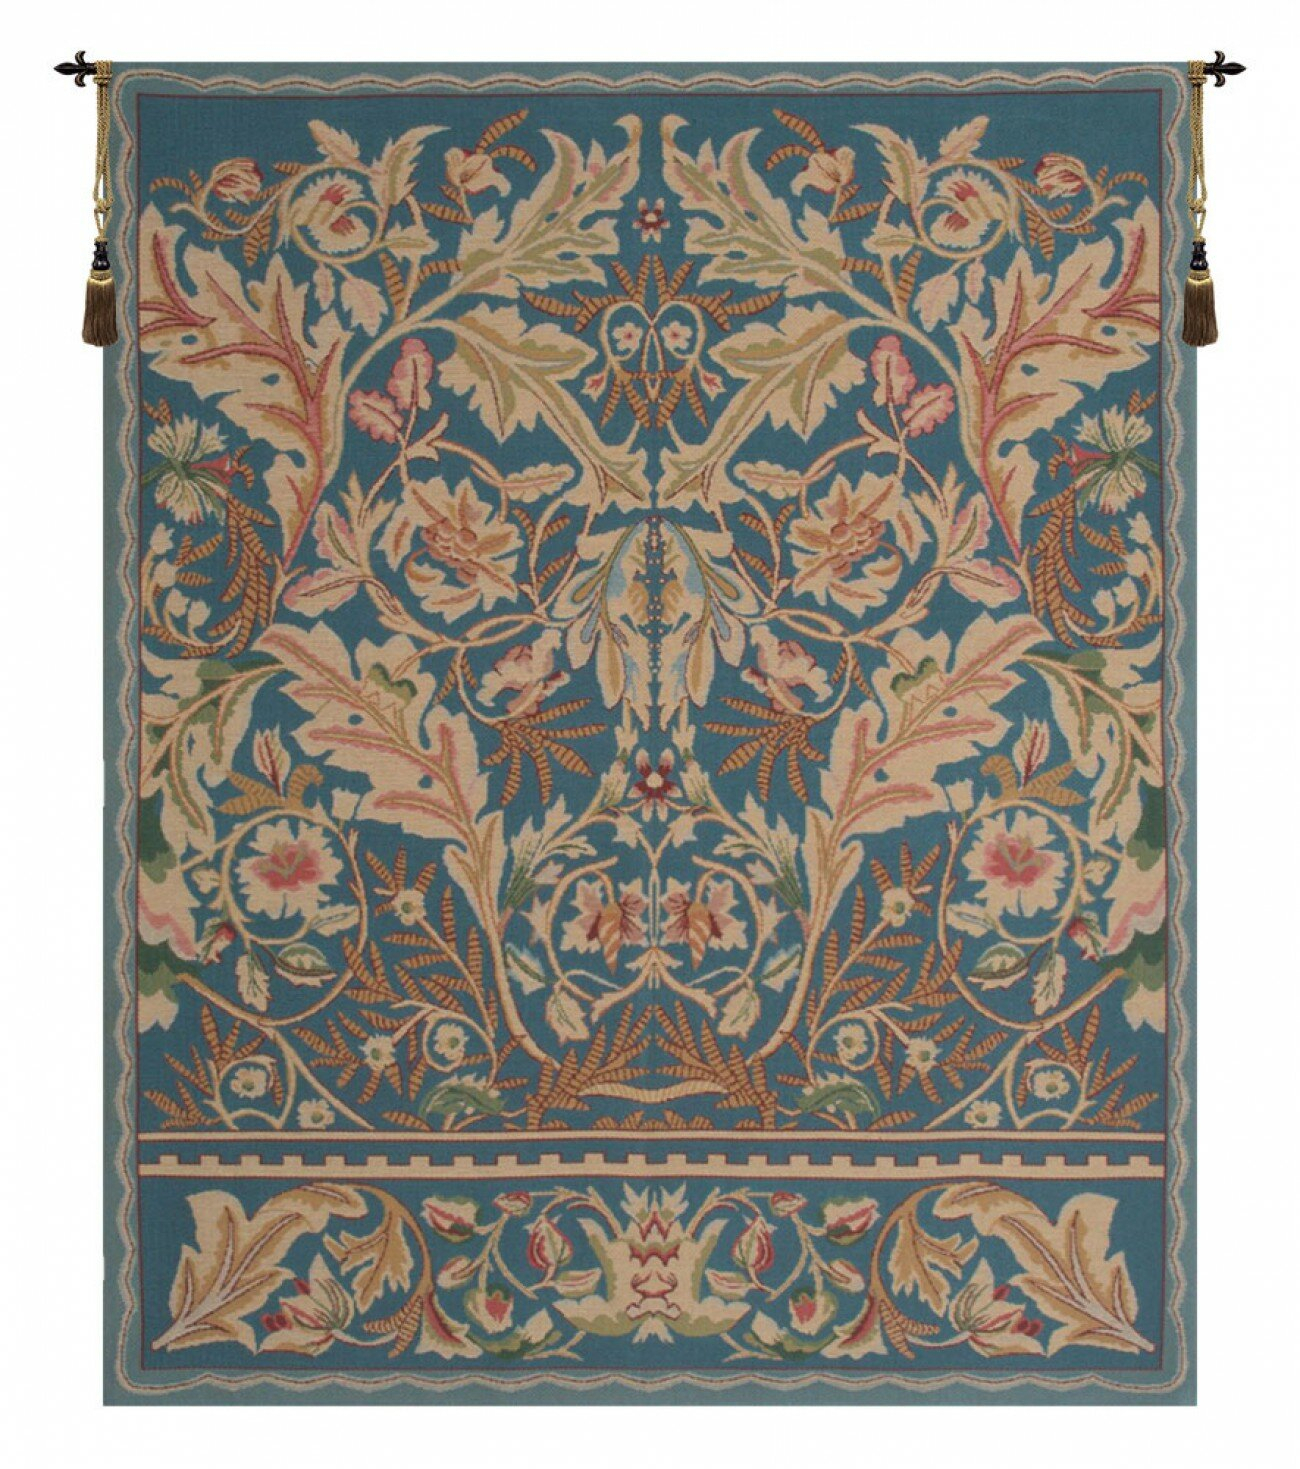 Acanthus Iii Wall Hanging Within Current Blended Fabric Bayeux William Troops Wall Hangings (View 13 of 20)